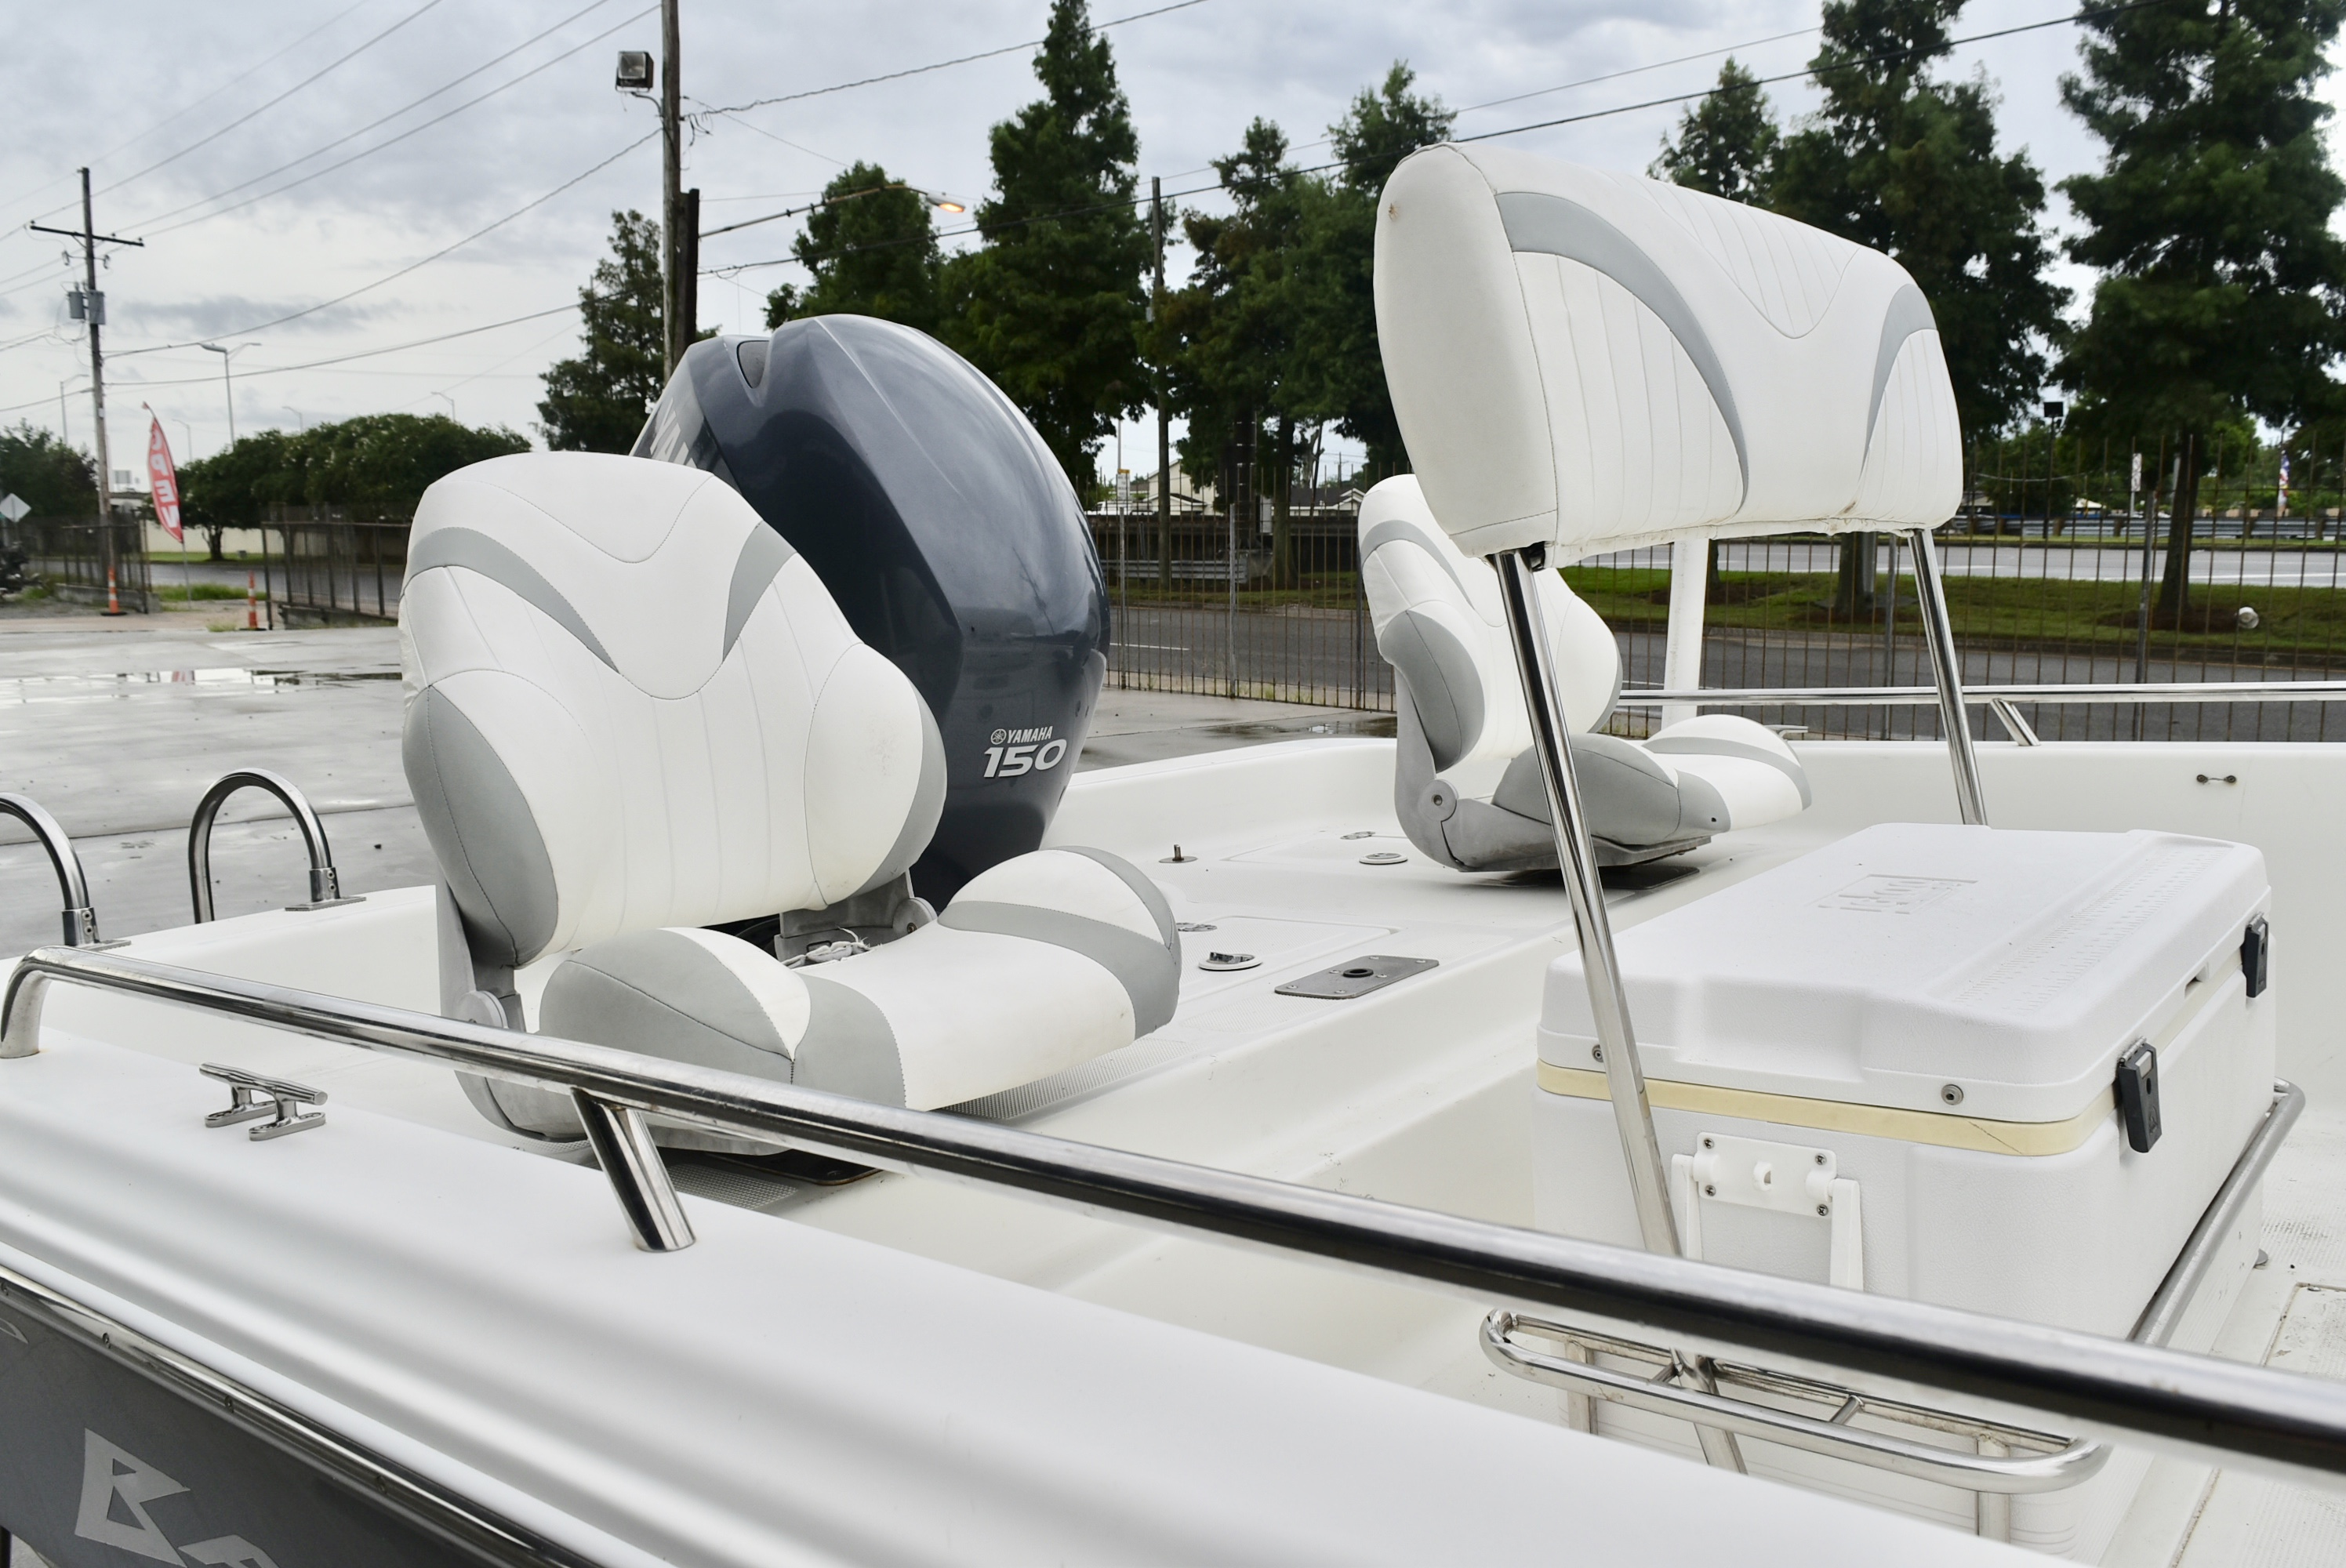 2007 Bay Stealth boat for sale, model of the boat is 2030 & Image # 7 of 8